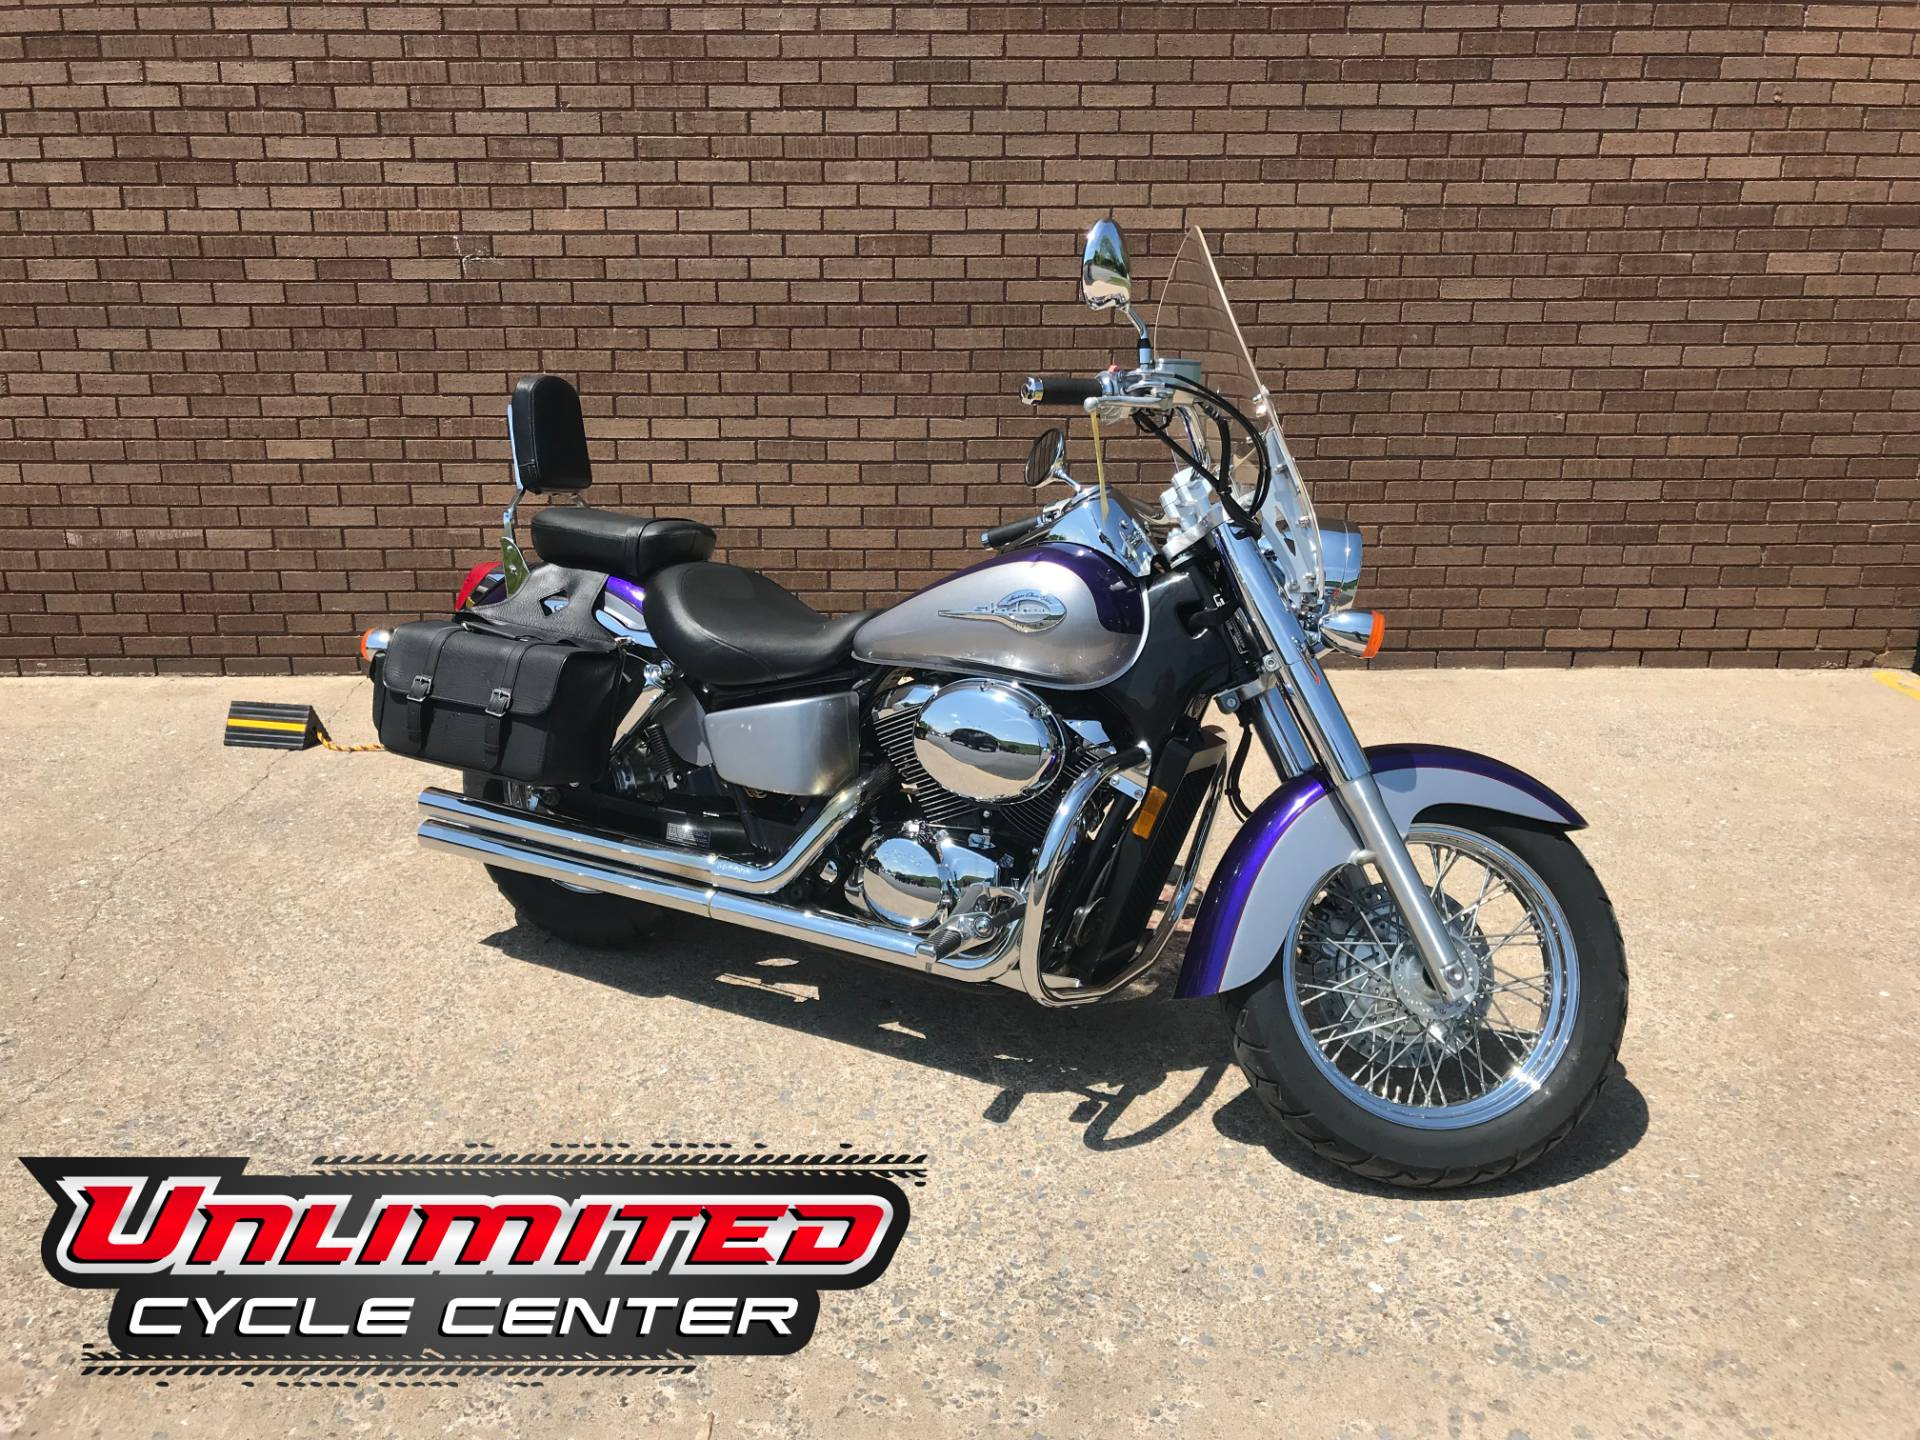 2002 honda shadow ace 750 deluxe motorcycles tyrone. Black Bedroom Furniture Sets. Home Design Ideas